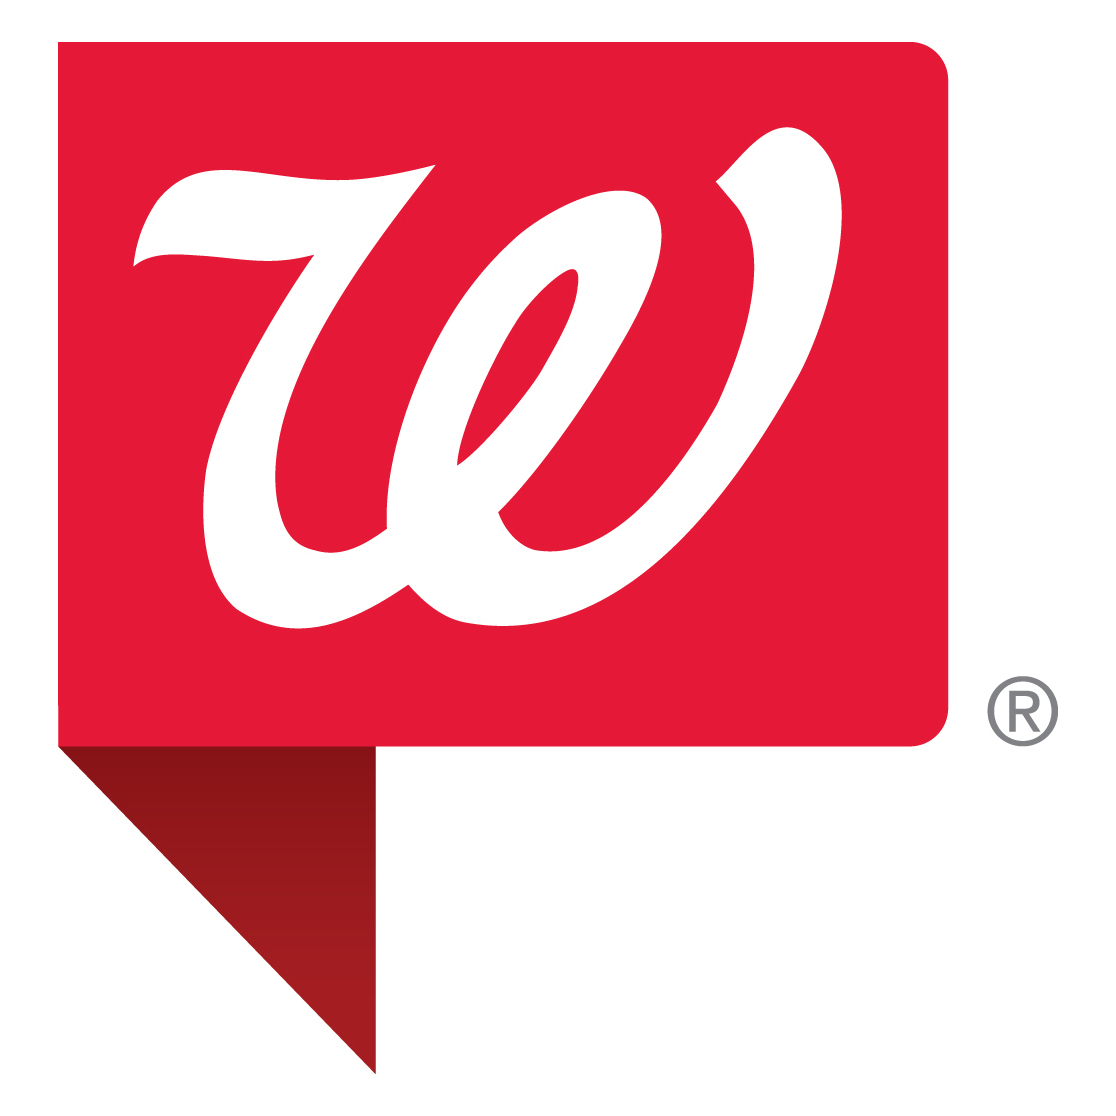 Walgreens - Gardnerville, NV - Pharmacist